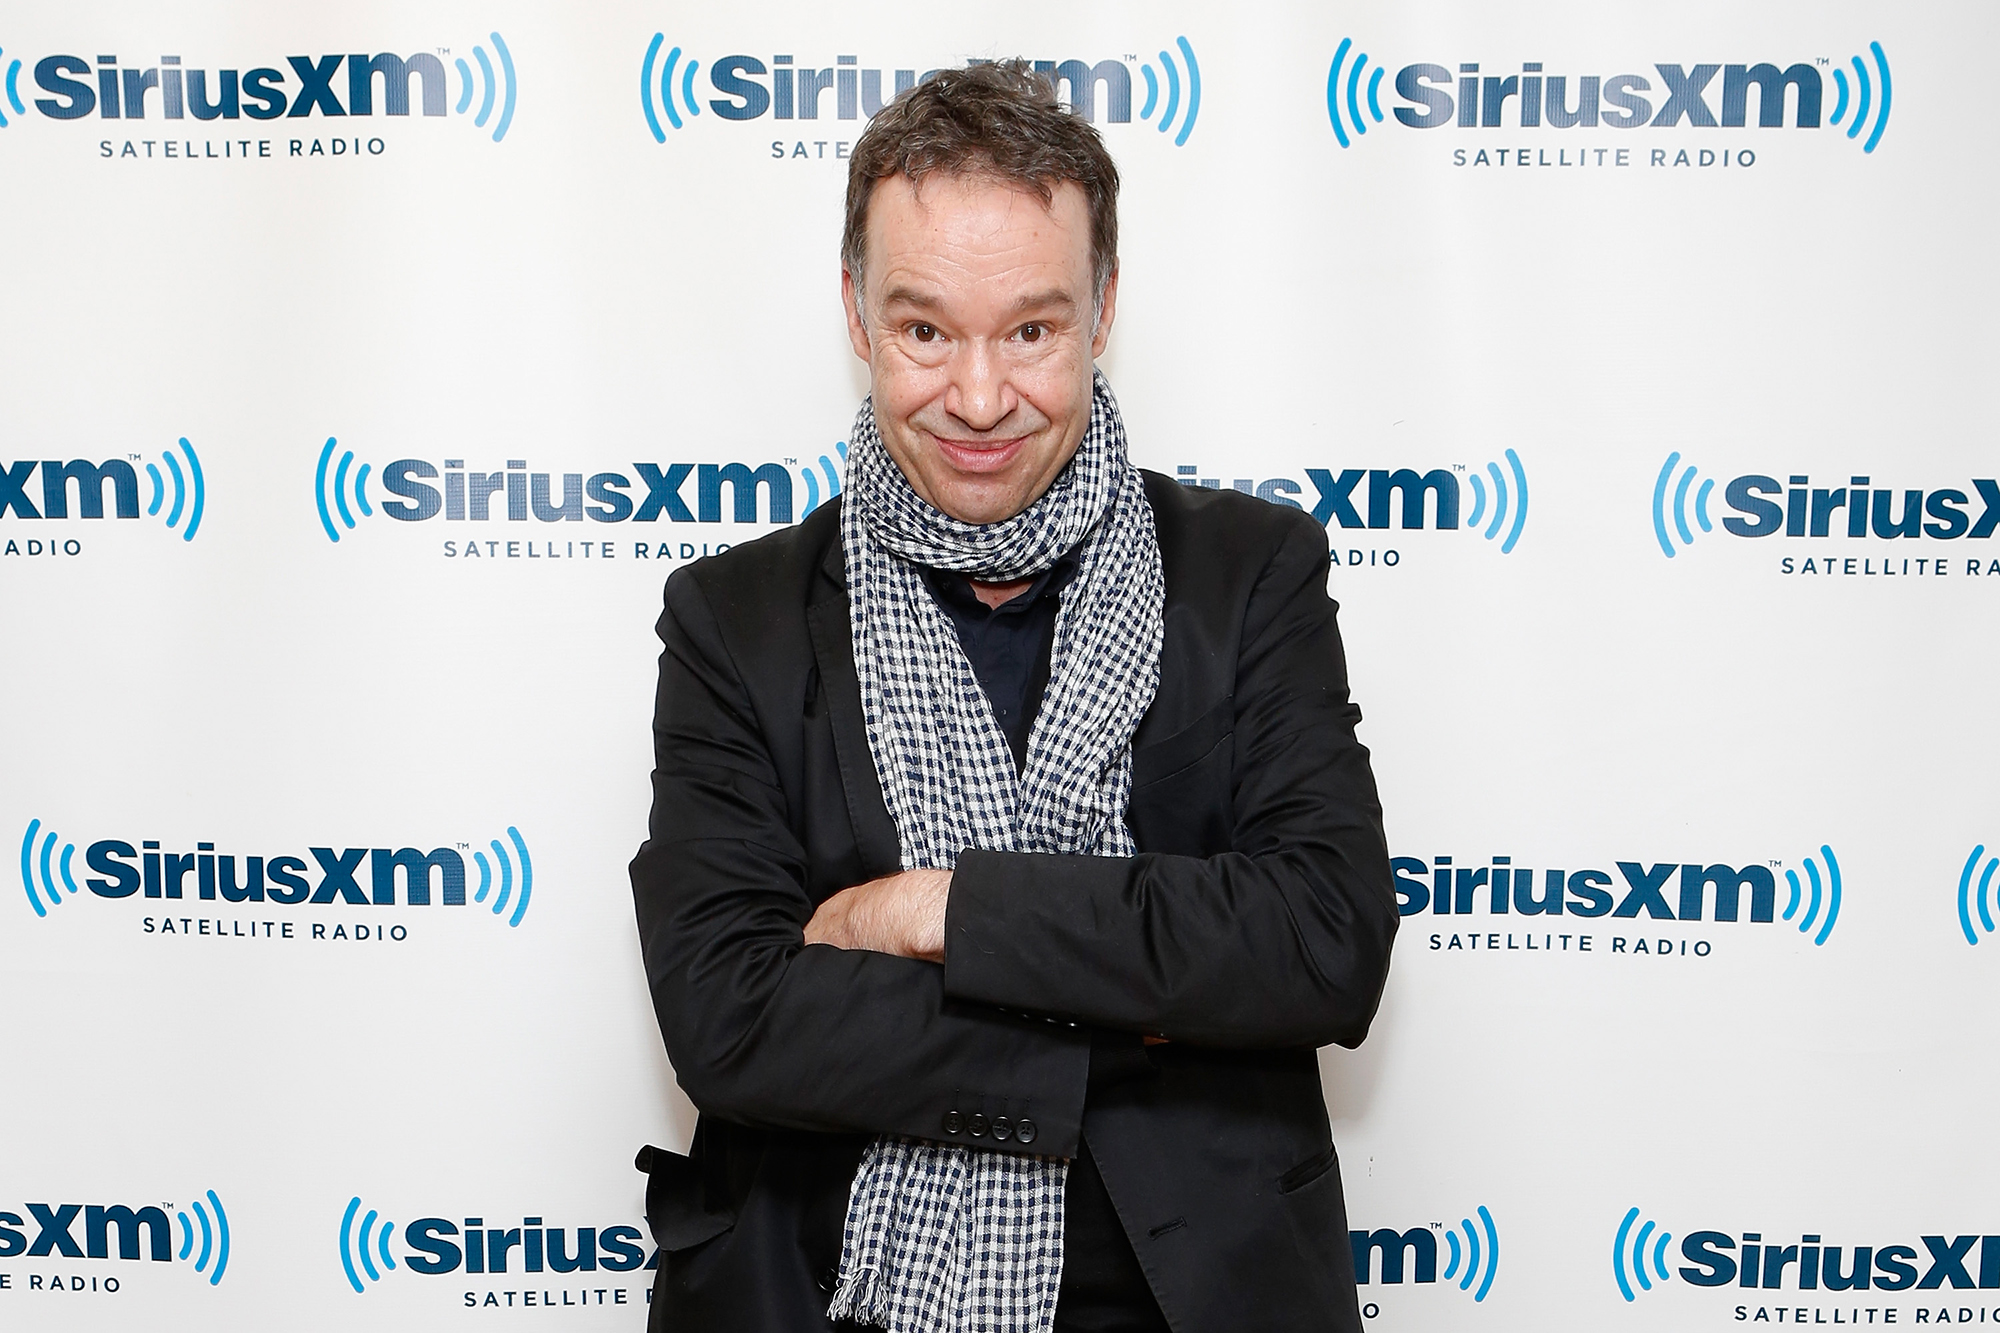 Gadget Clock theater critic Ben Brantley stepping down